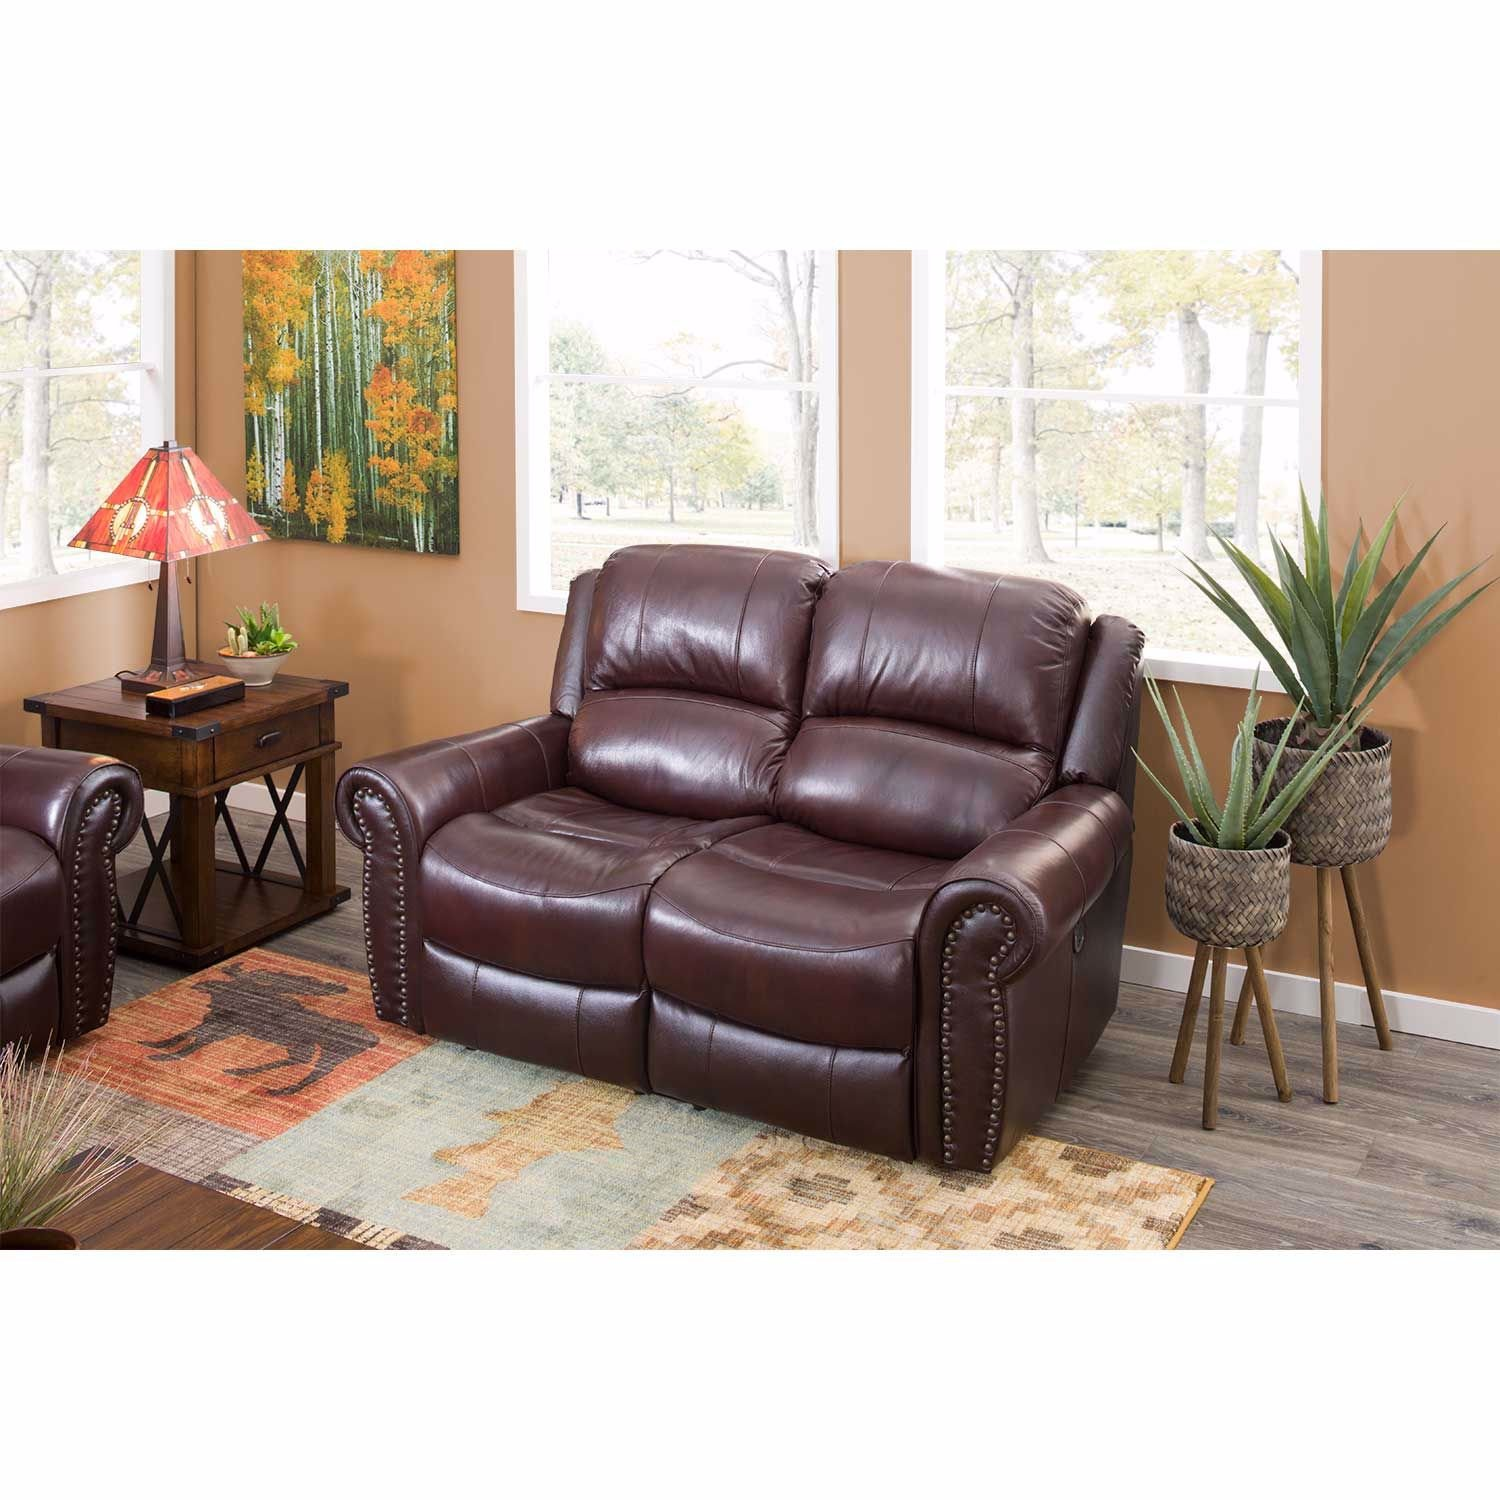 Picture of Church Hill Leather Power Reclining Sofa